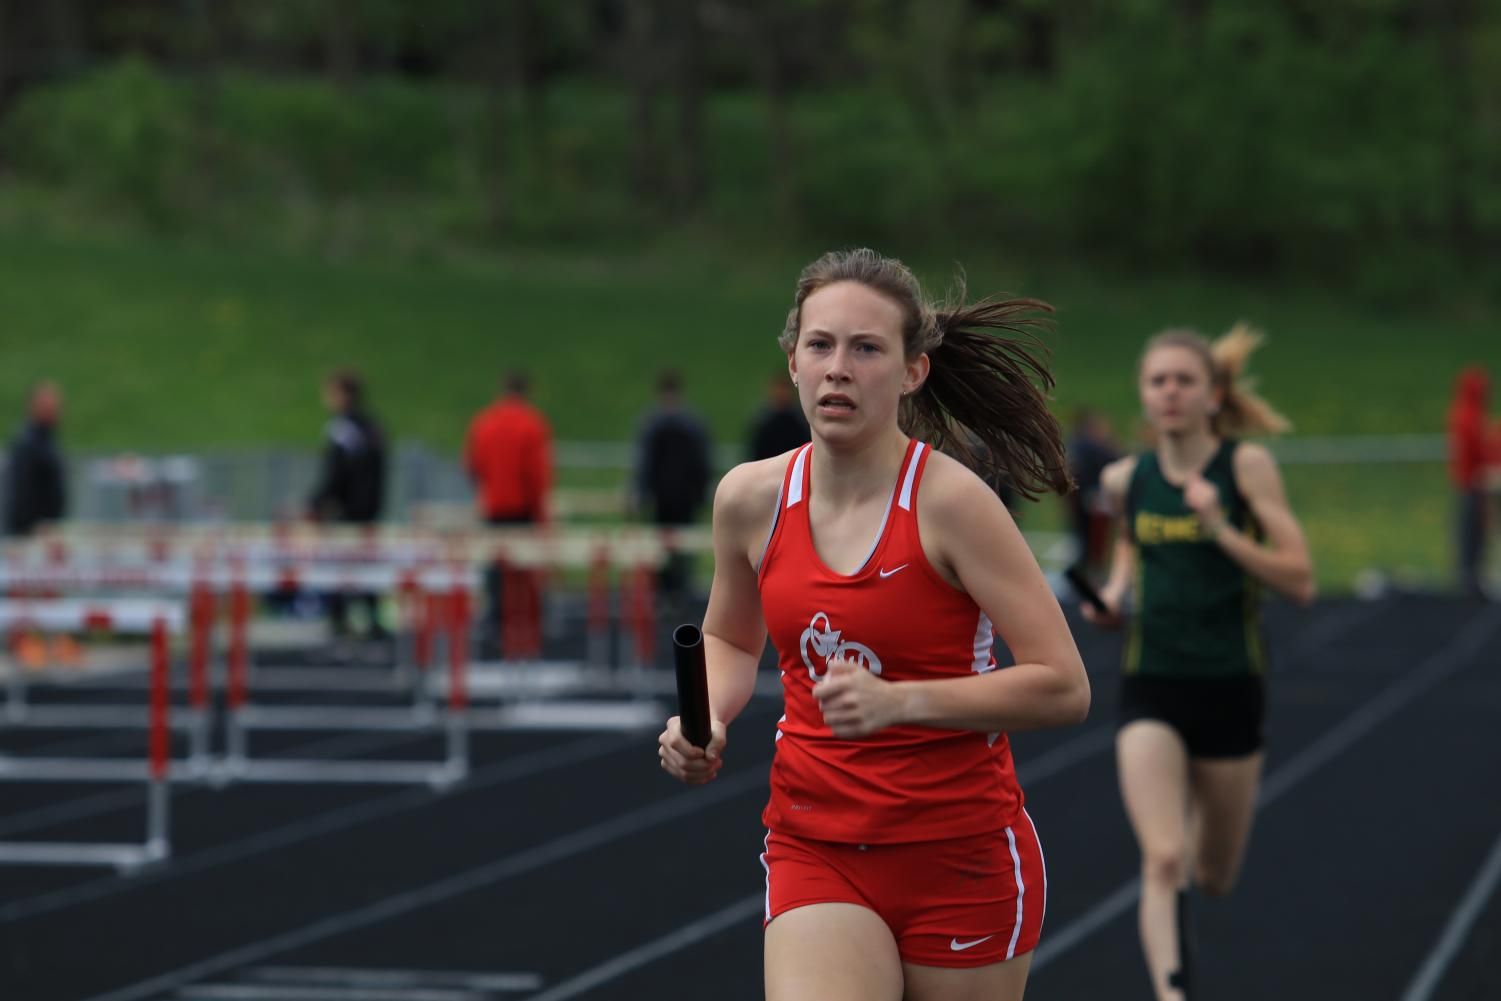 Anna Lindower '19 competes in the 2017 Forward Coleman Relays. She will do so again this Thursday the 19th.